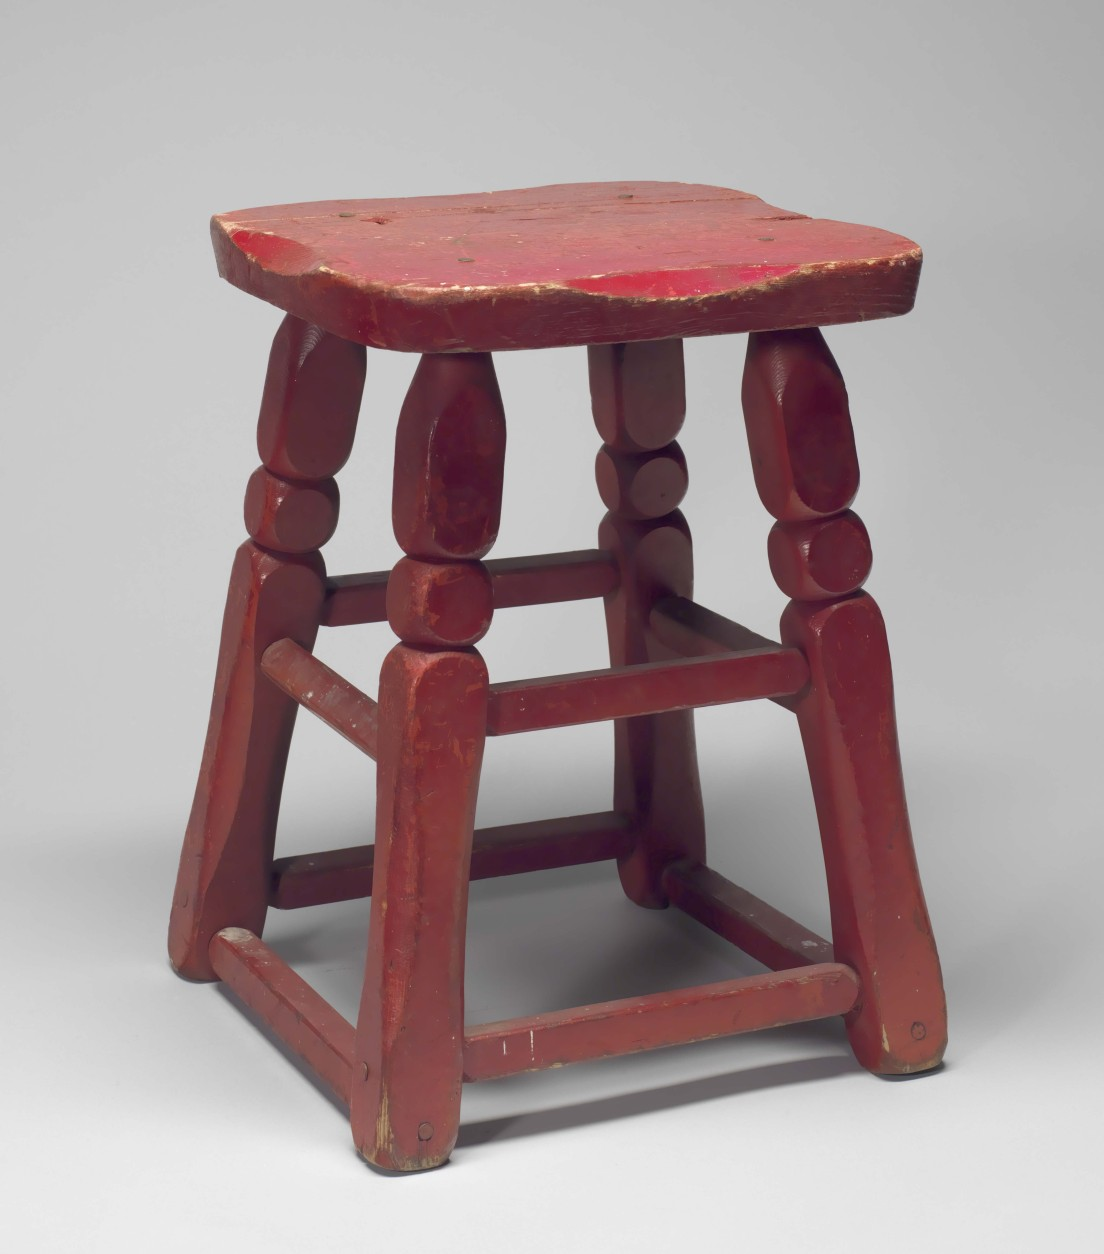 The corner stool from Dundee's 5th St. Gym, where Muhammad Ali trained. The stool is an item in the National Museum of American History and Culture's collection. (Courtesy Collection of the Smithsonian National Museum of African American History and Culture)